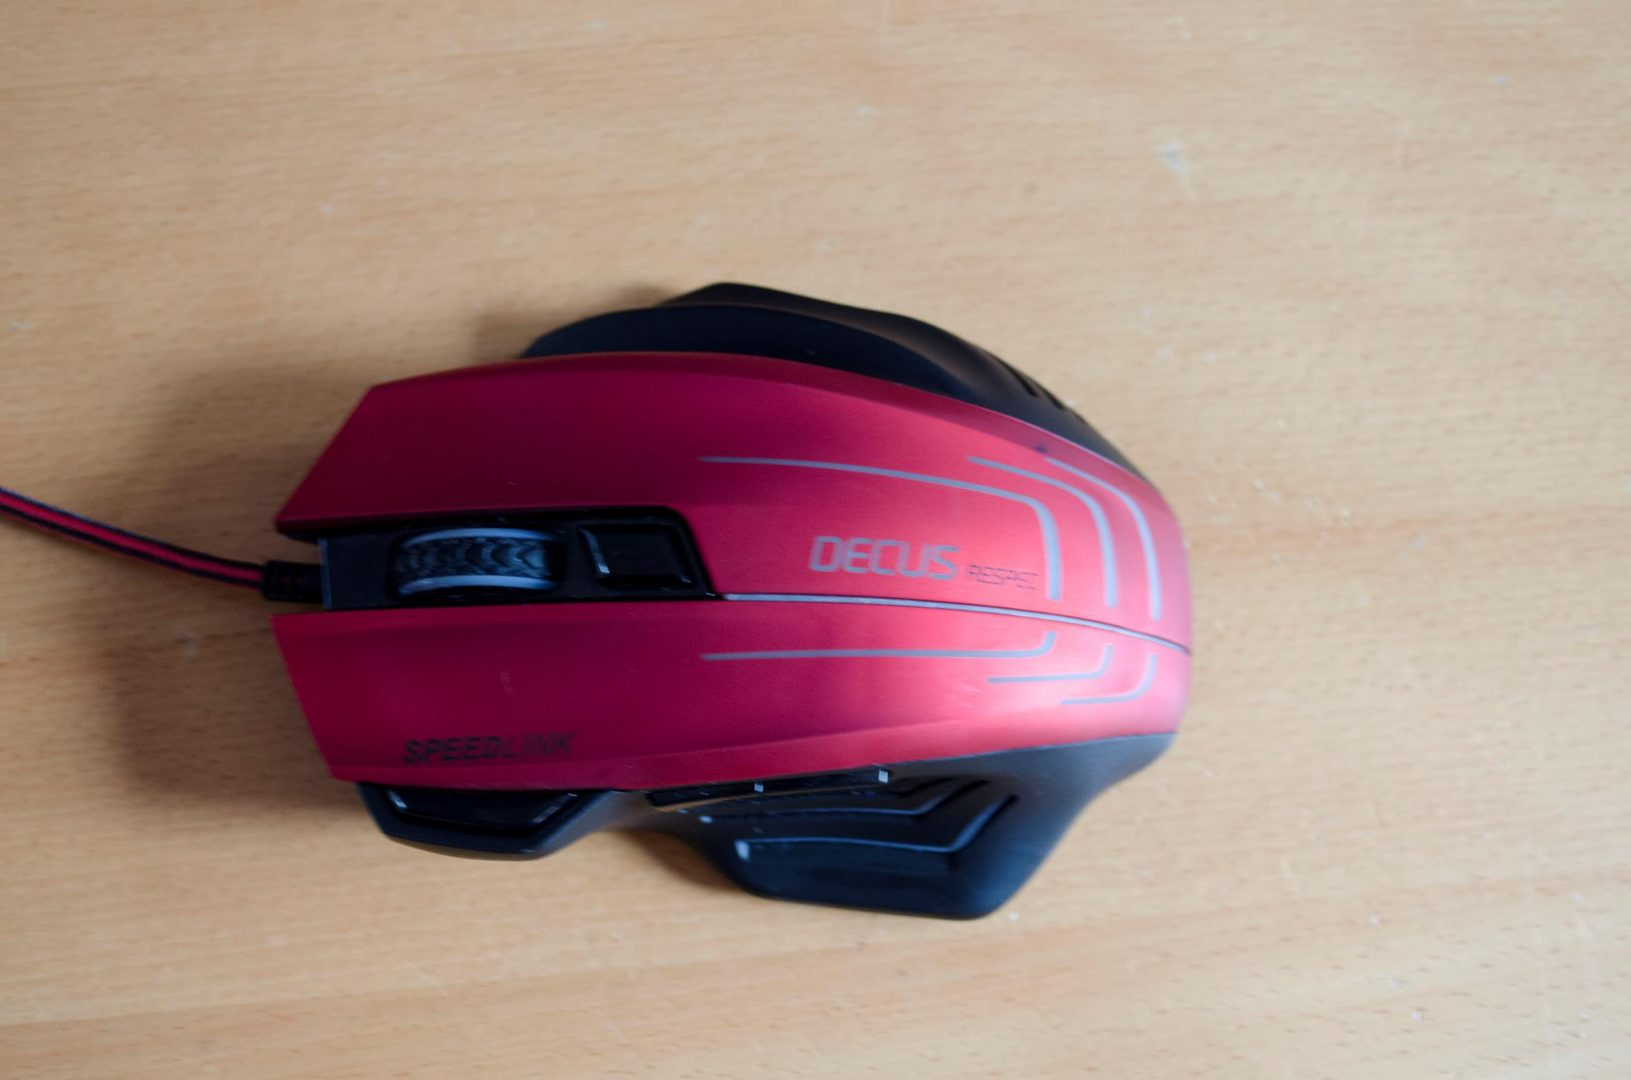 speedlink decus respec gaming mouse review_3